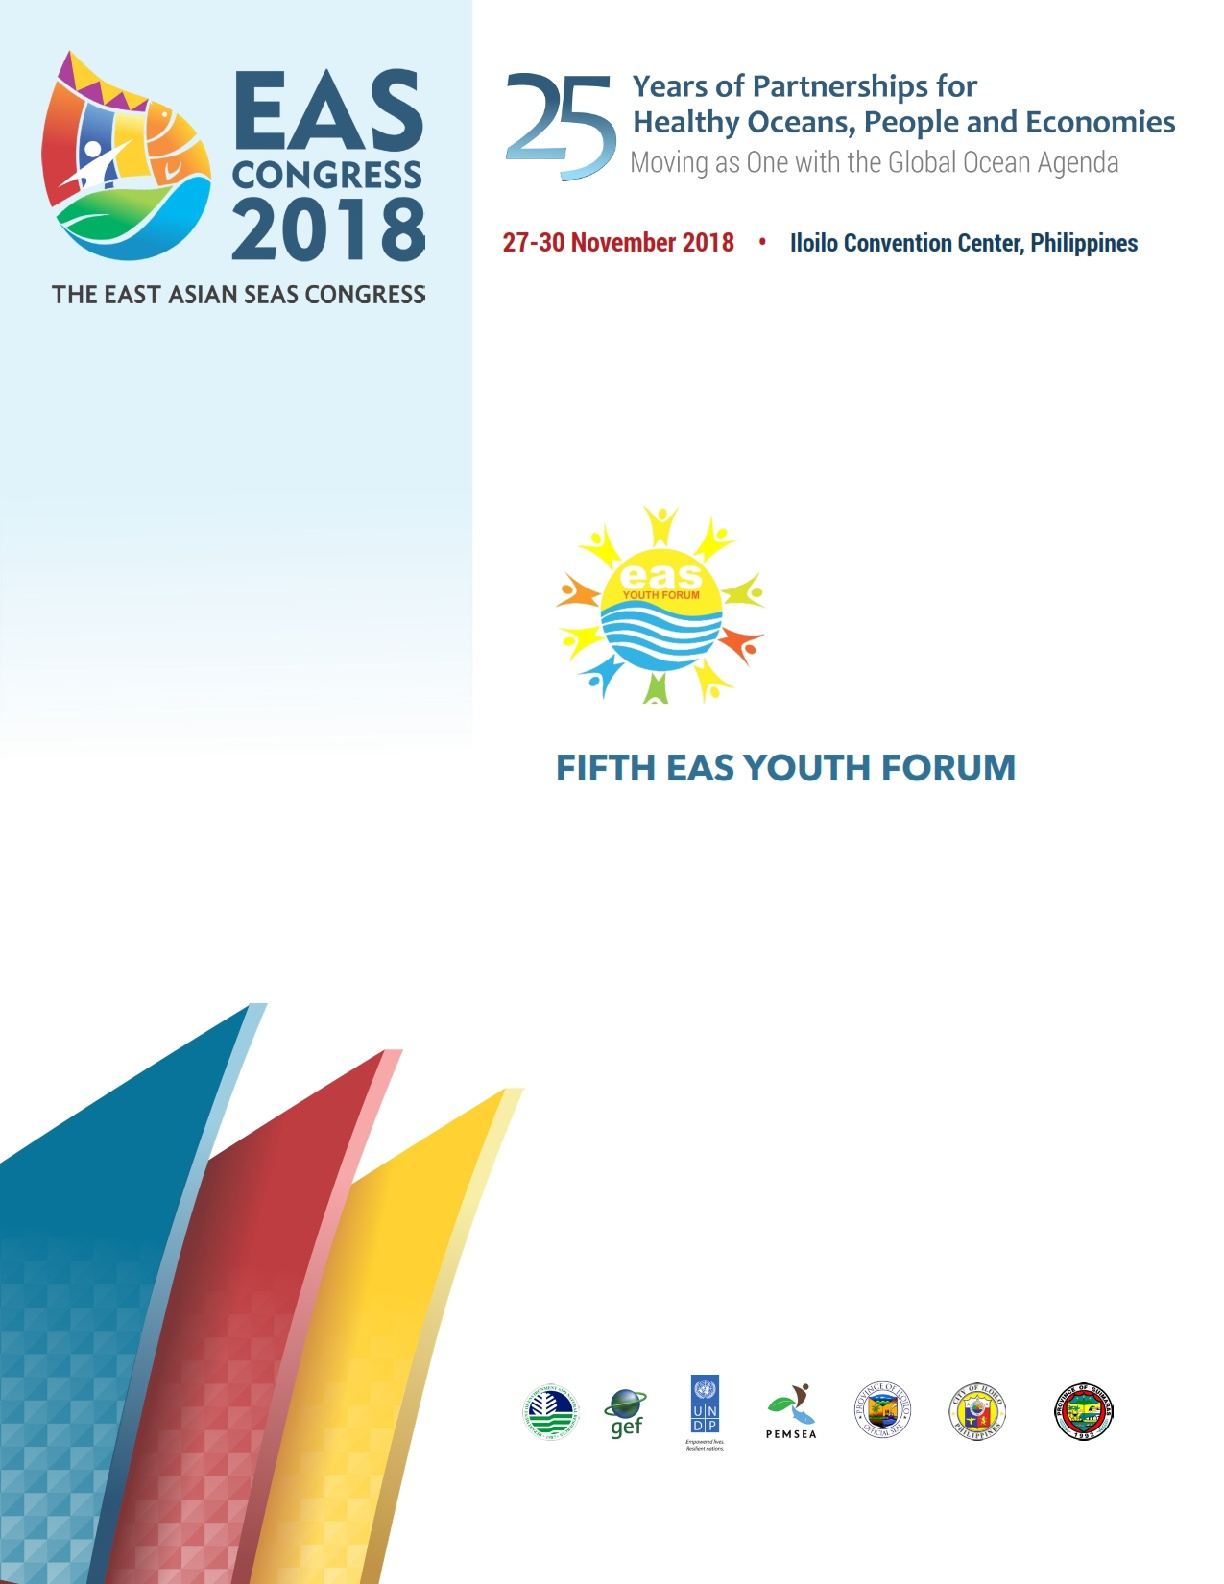 EASC 2018 Proceedings of the Fifth EAS Youth Forum